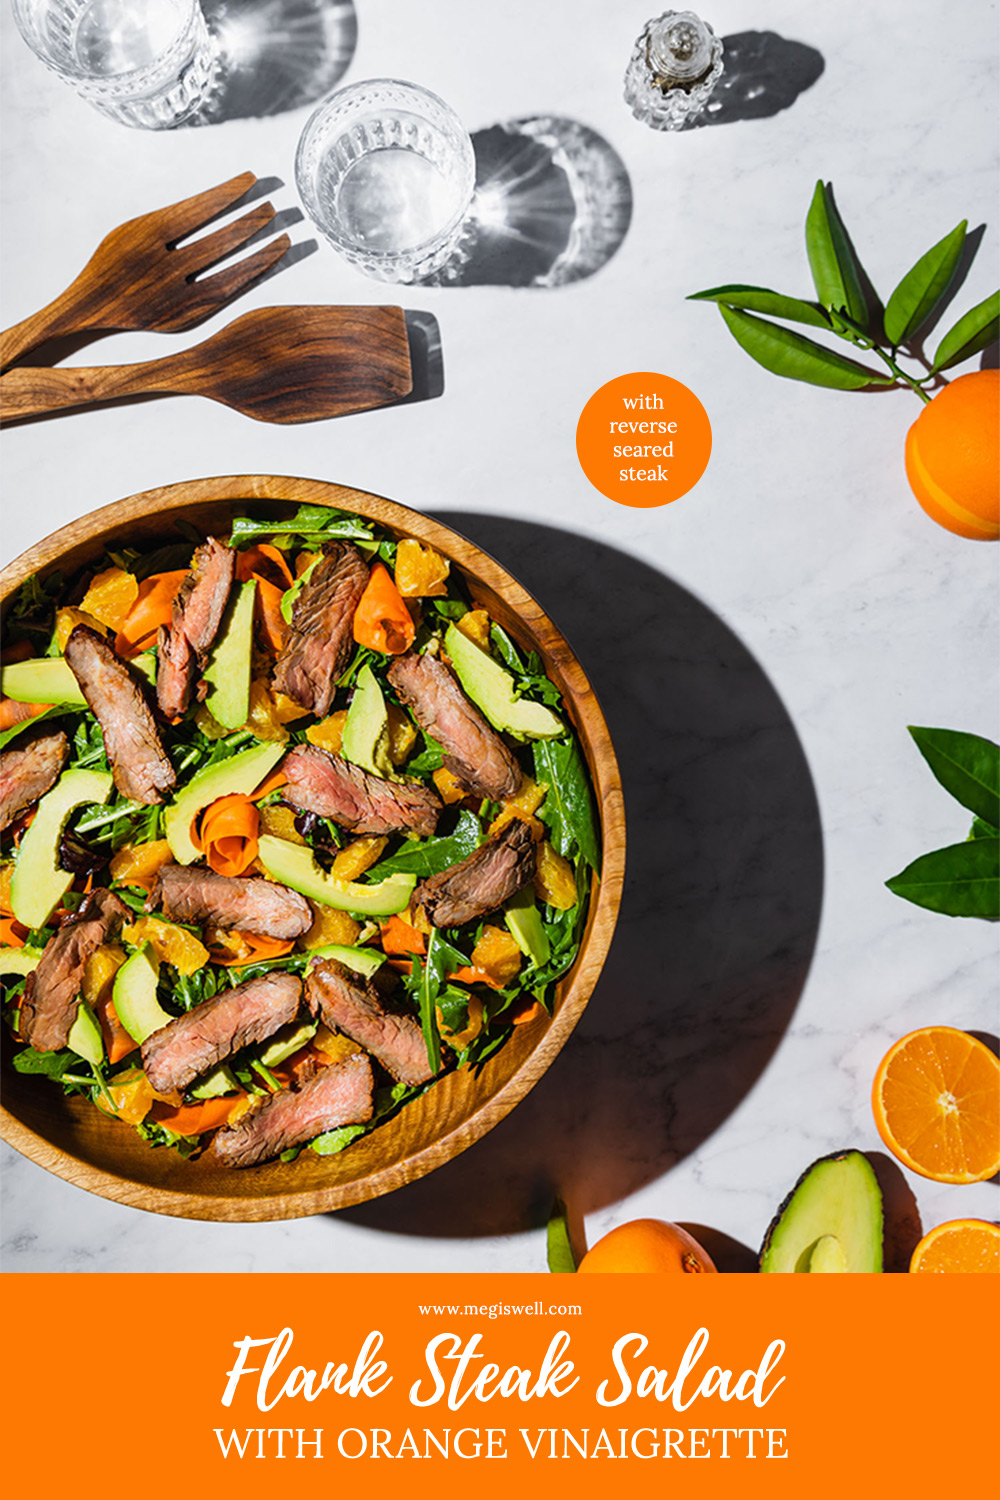 This delicious Flank Steak Salad with Orange Vinaigrette contains perfectly reverse seared flank steak (no grill required), fresh winter oranges, Thai basil, arugula, peeled carrots, and avocado. | recipe with steak | steak marinade recipe | easy flank steak recipe | flank steak dinner | healthy | how to cook flank steak | oven flank steak | homemade salad | salad recipe | www.megiswell.com